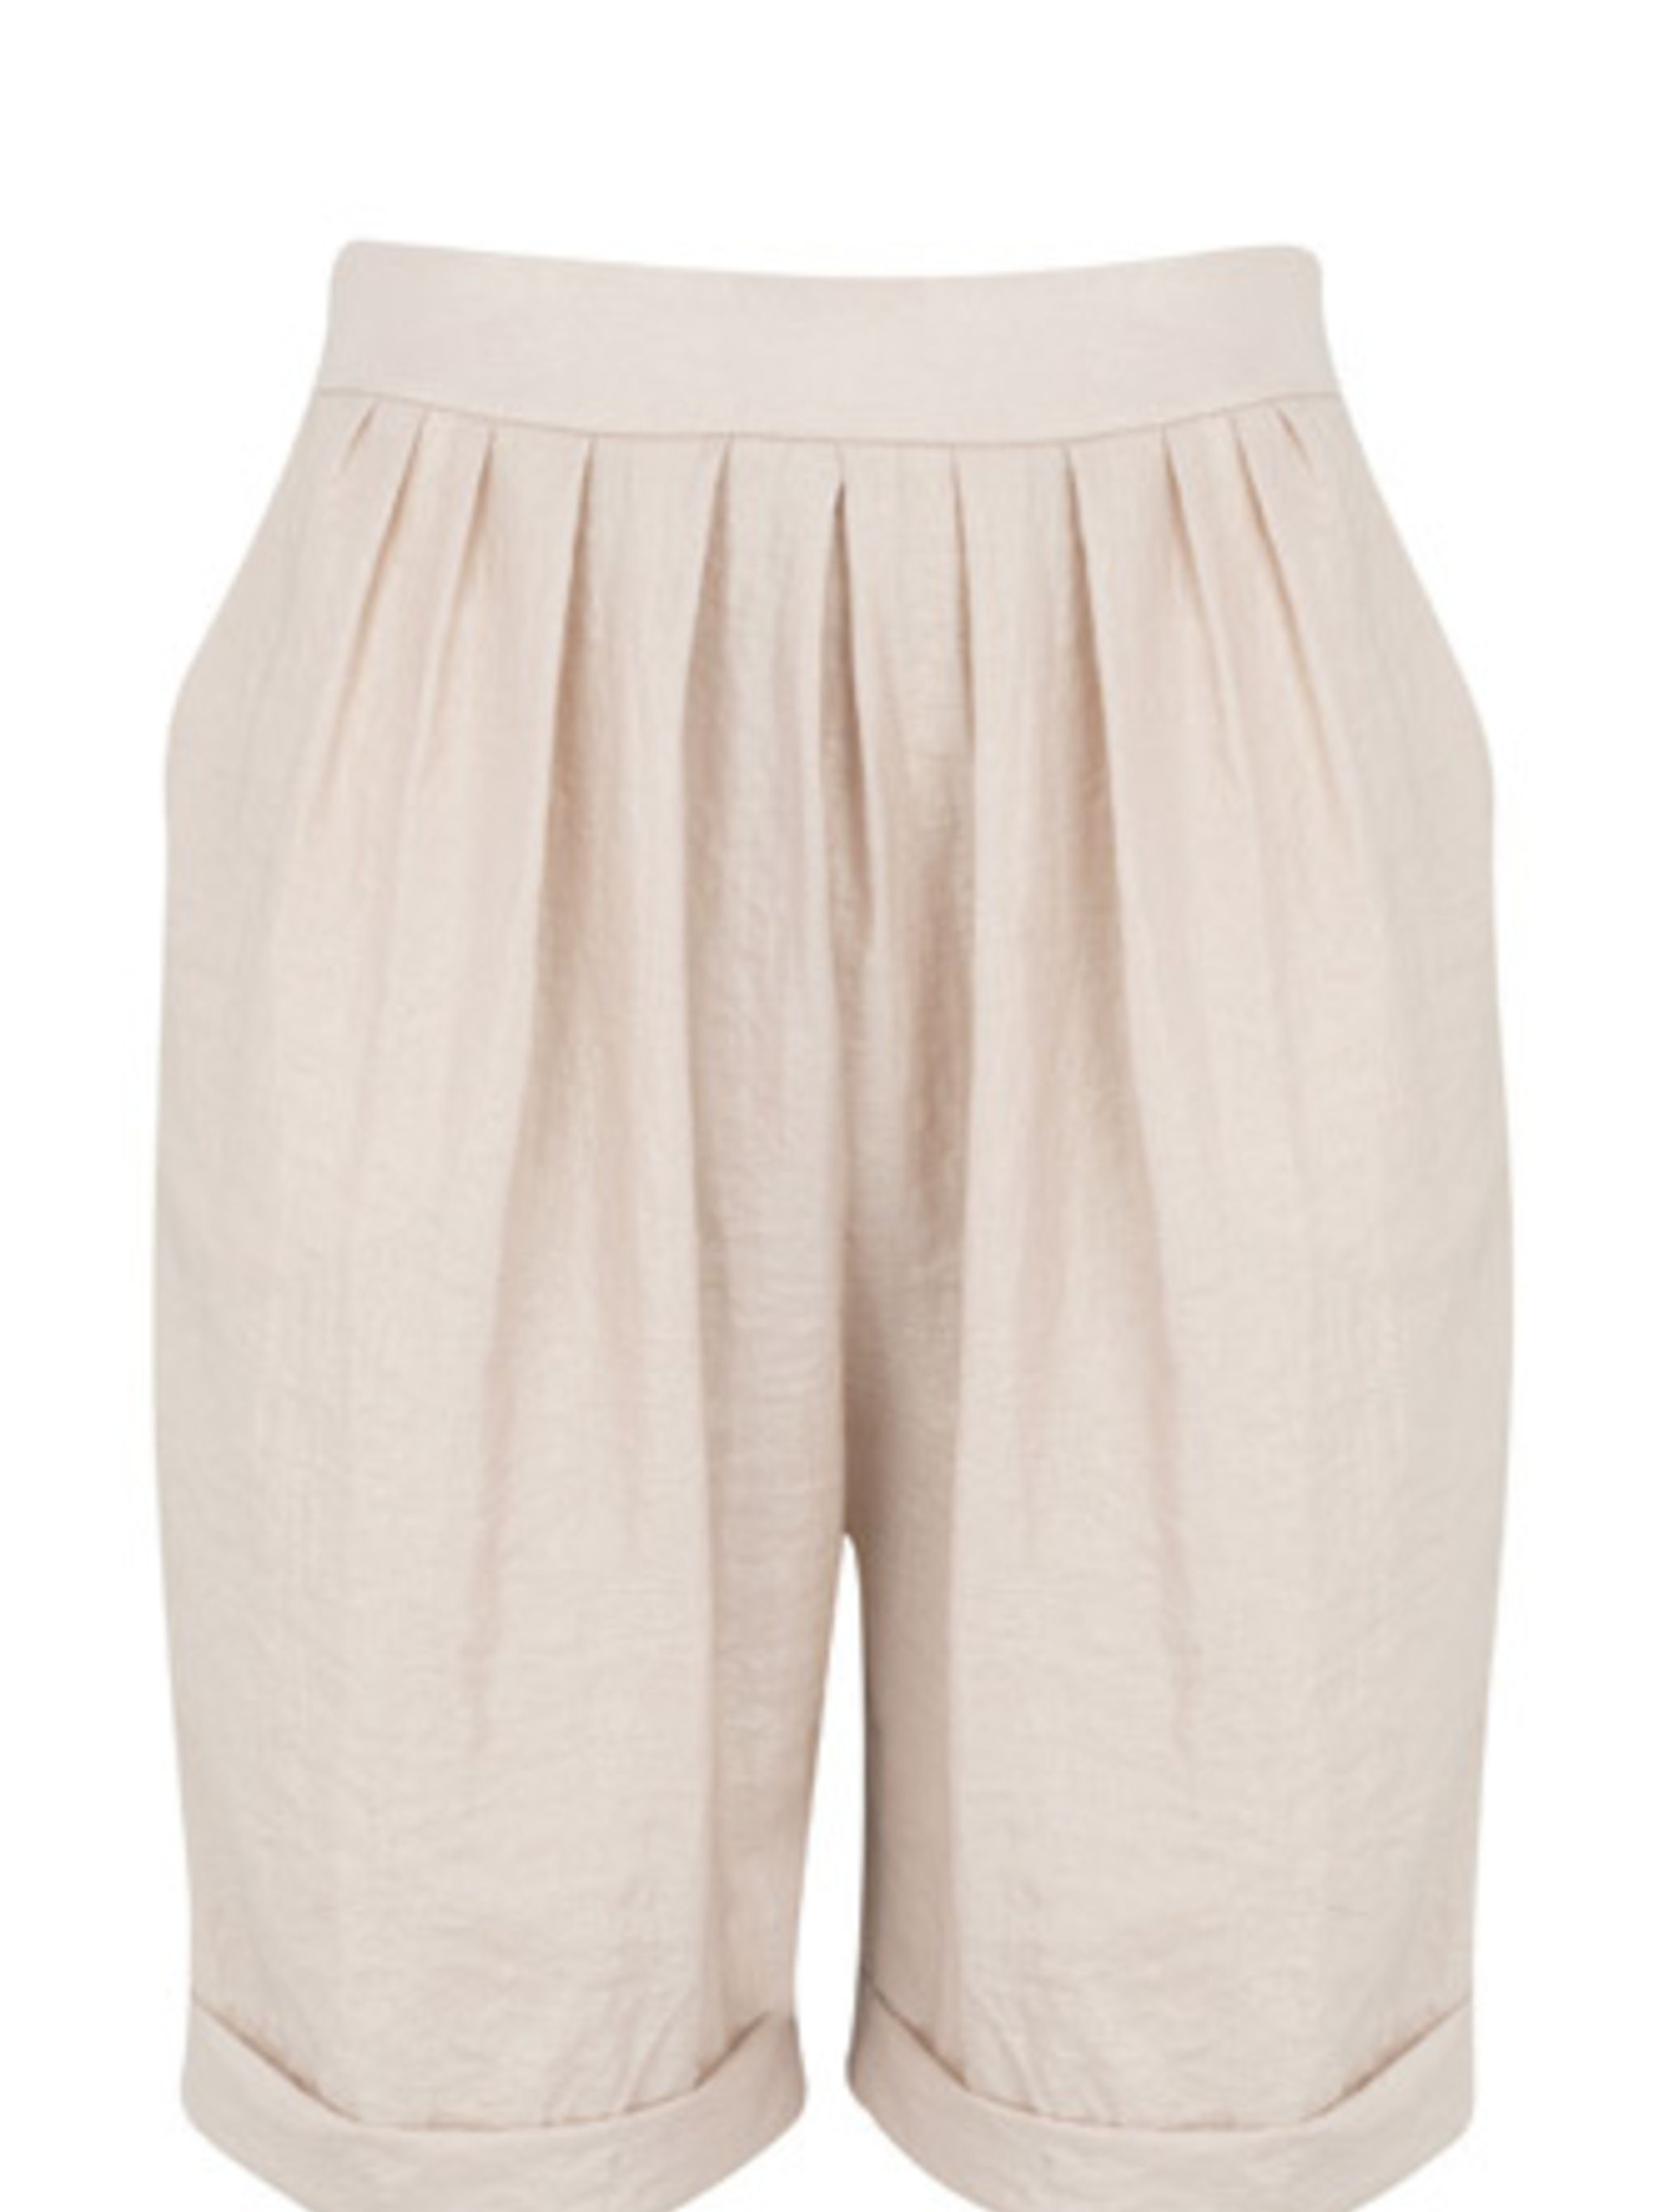 "<p>These shorts are so classic and chic that they will last for seasons to come. A good investment buy.Shorts, £105 by Maje at <a href=""http://www.fenwick.co.uk/"">Fenwick</a></p>"